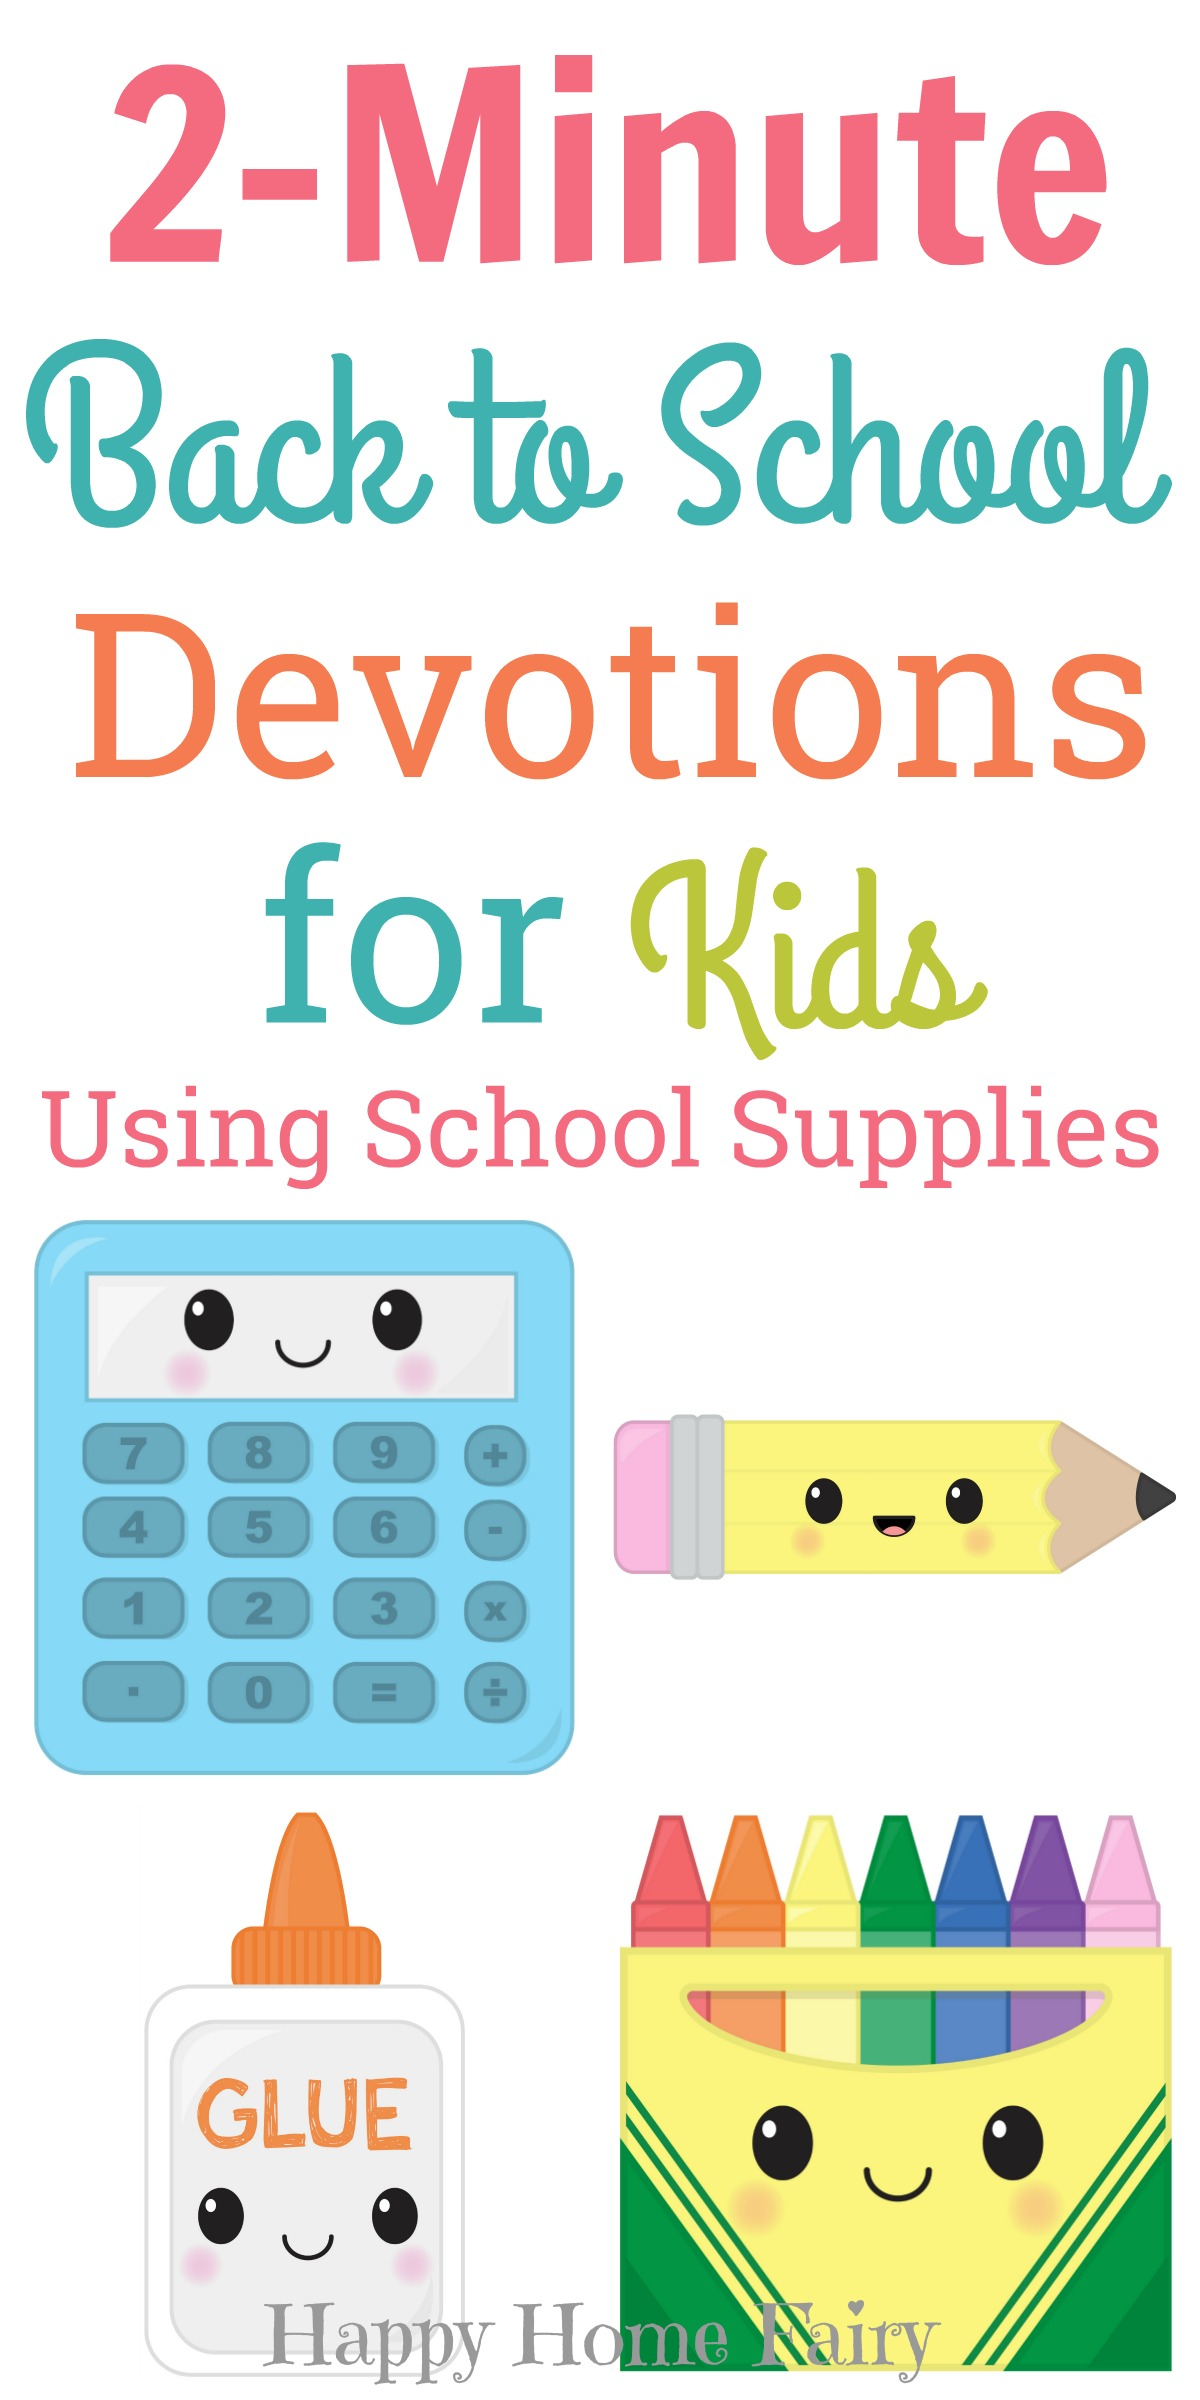 image relating to Printable Devotions identify 2-Moment Back again toward Higher education Devotions for Little ones - Joyful House Fairy